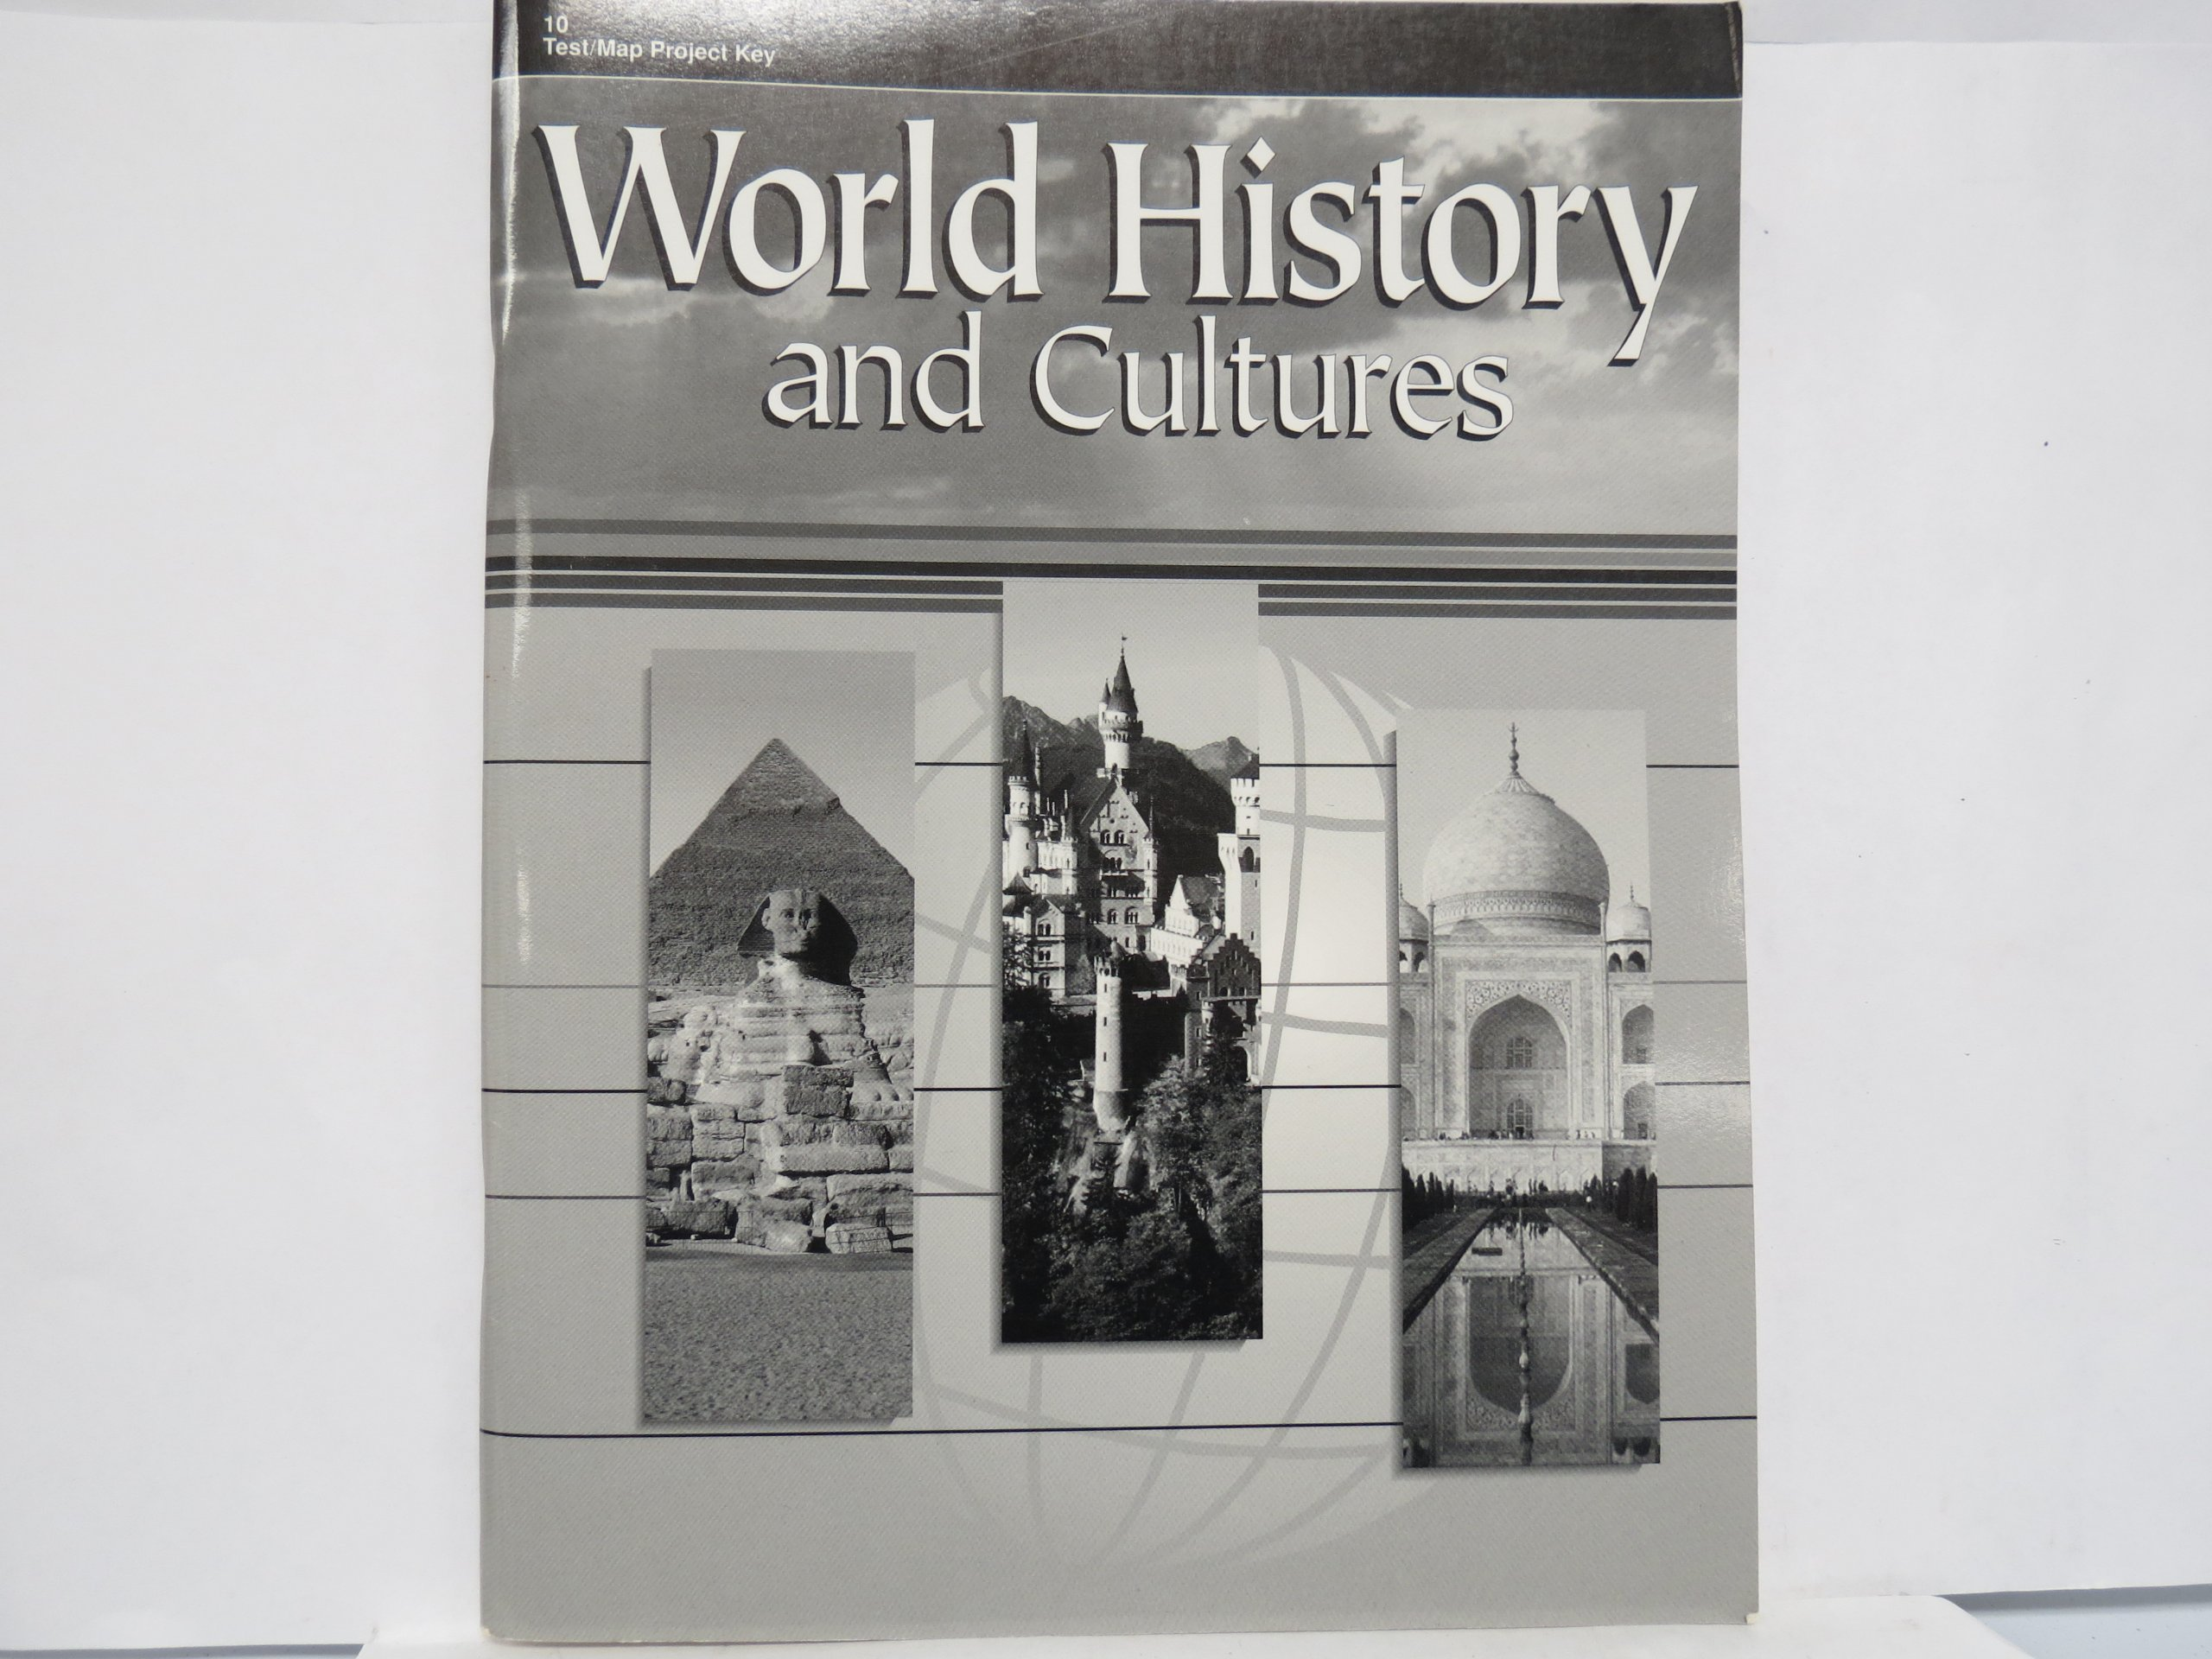 World history and cultures teachers testmap project key a beka world history and cultures teachers testmap project key a beka book amazon books gumiabroncs Gallery